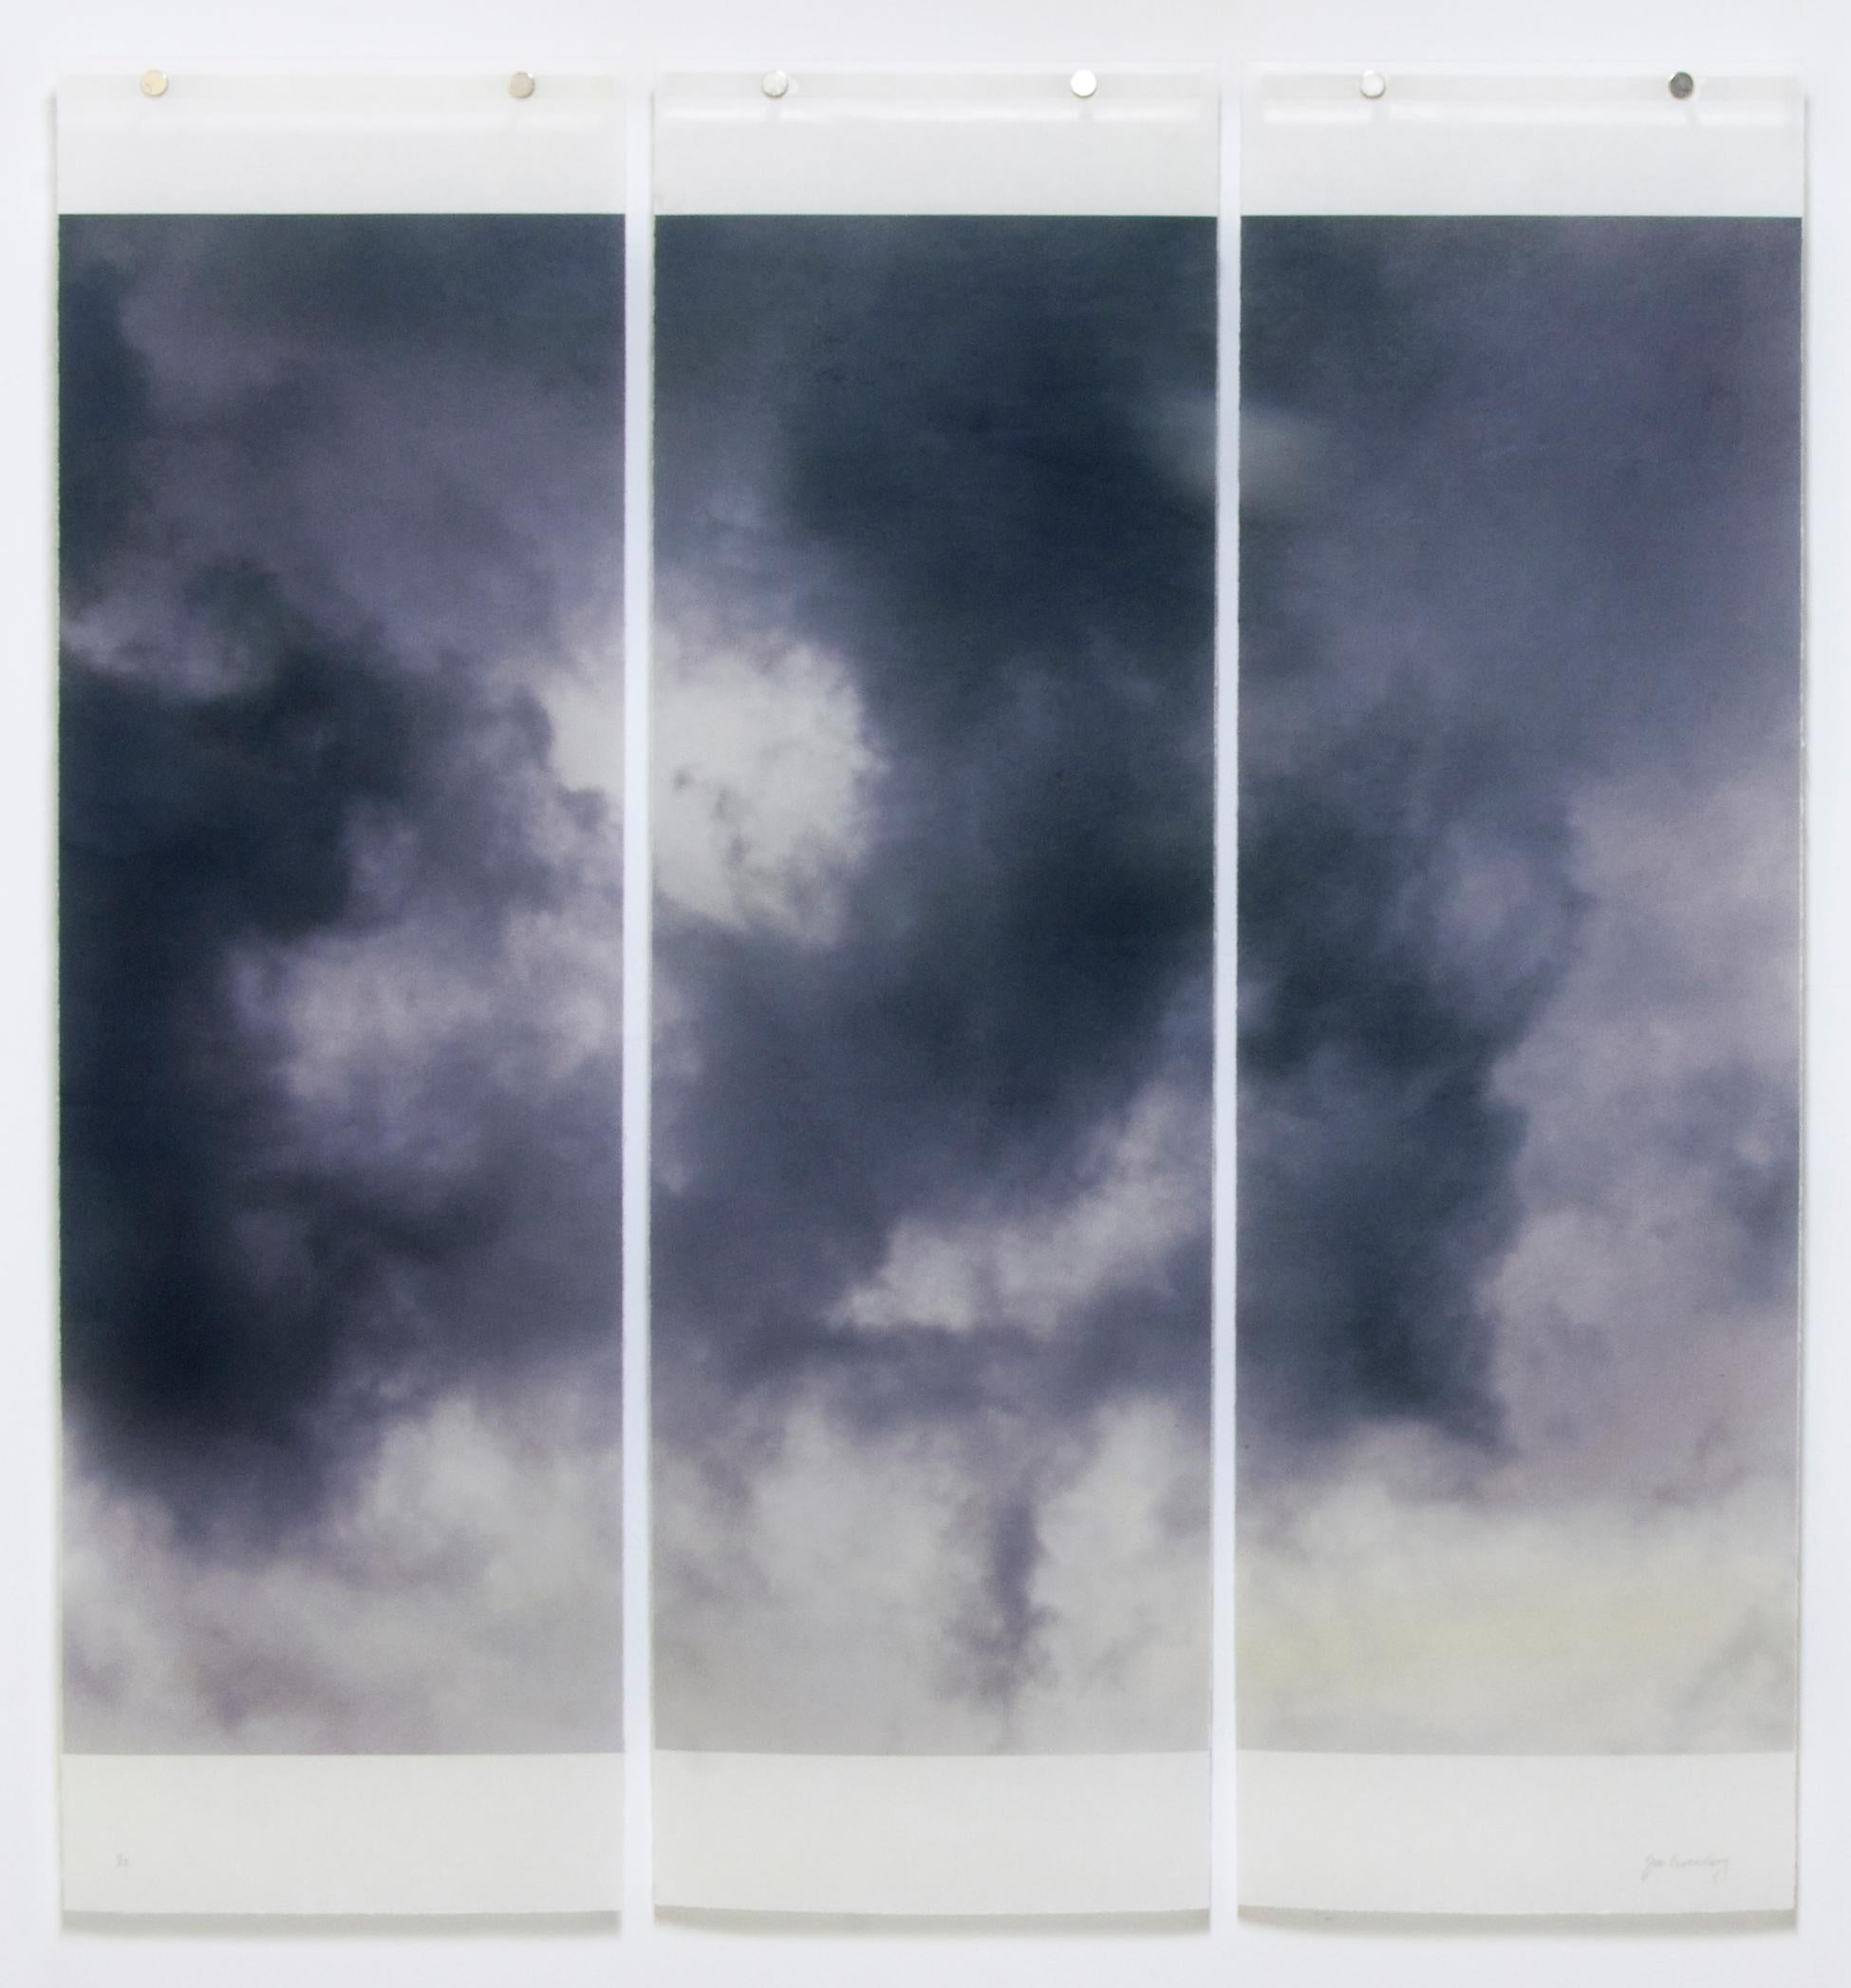 Songs of the Sky 7: Abstract Landscape Photograph of Clouds & Sky, 3 panels